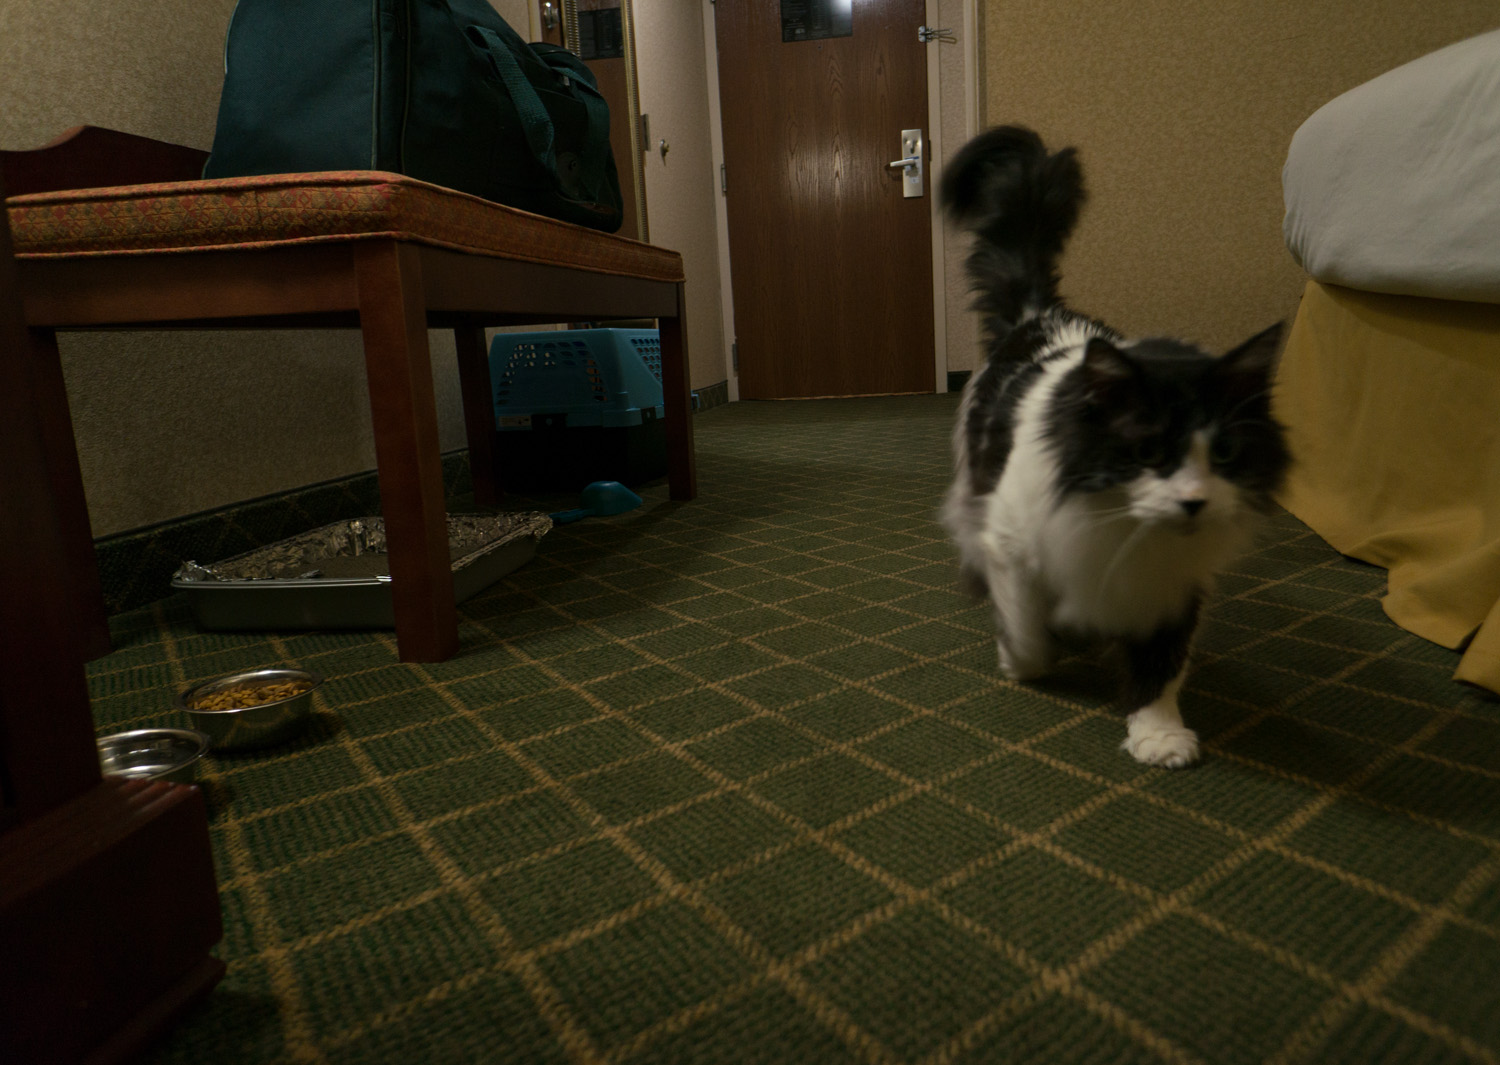 Cherie checking out the room during her first-ever hotel stay.